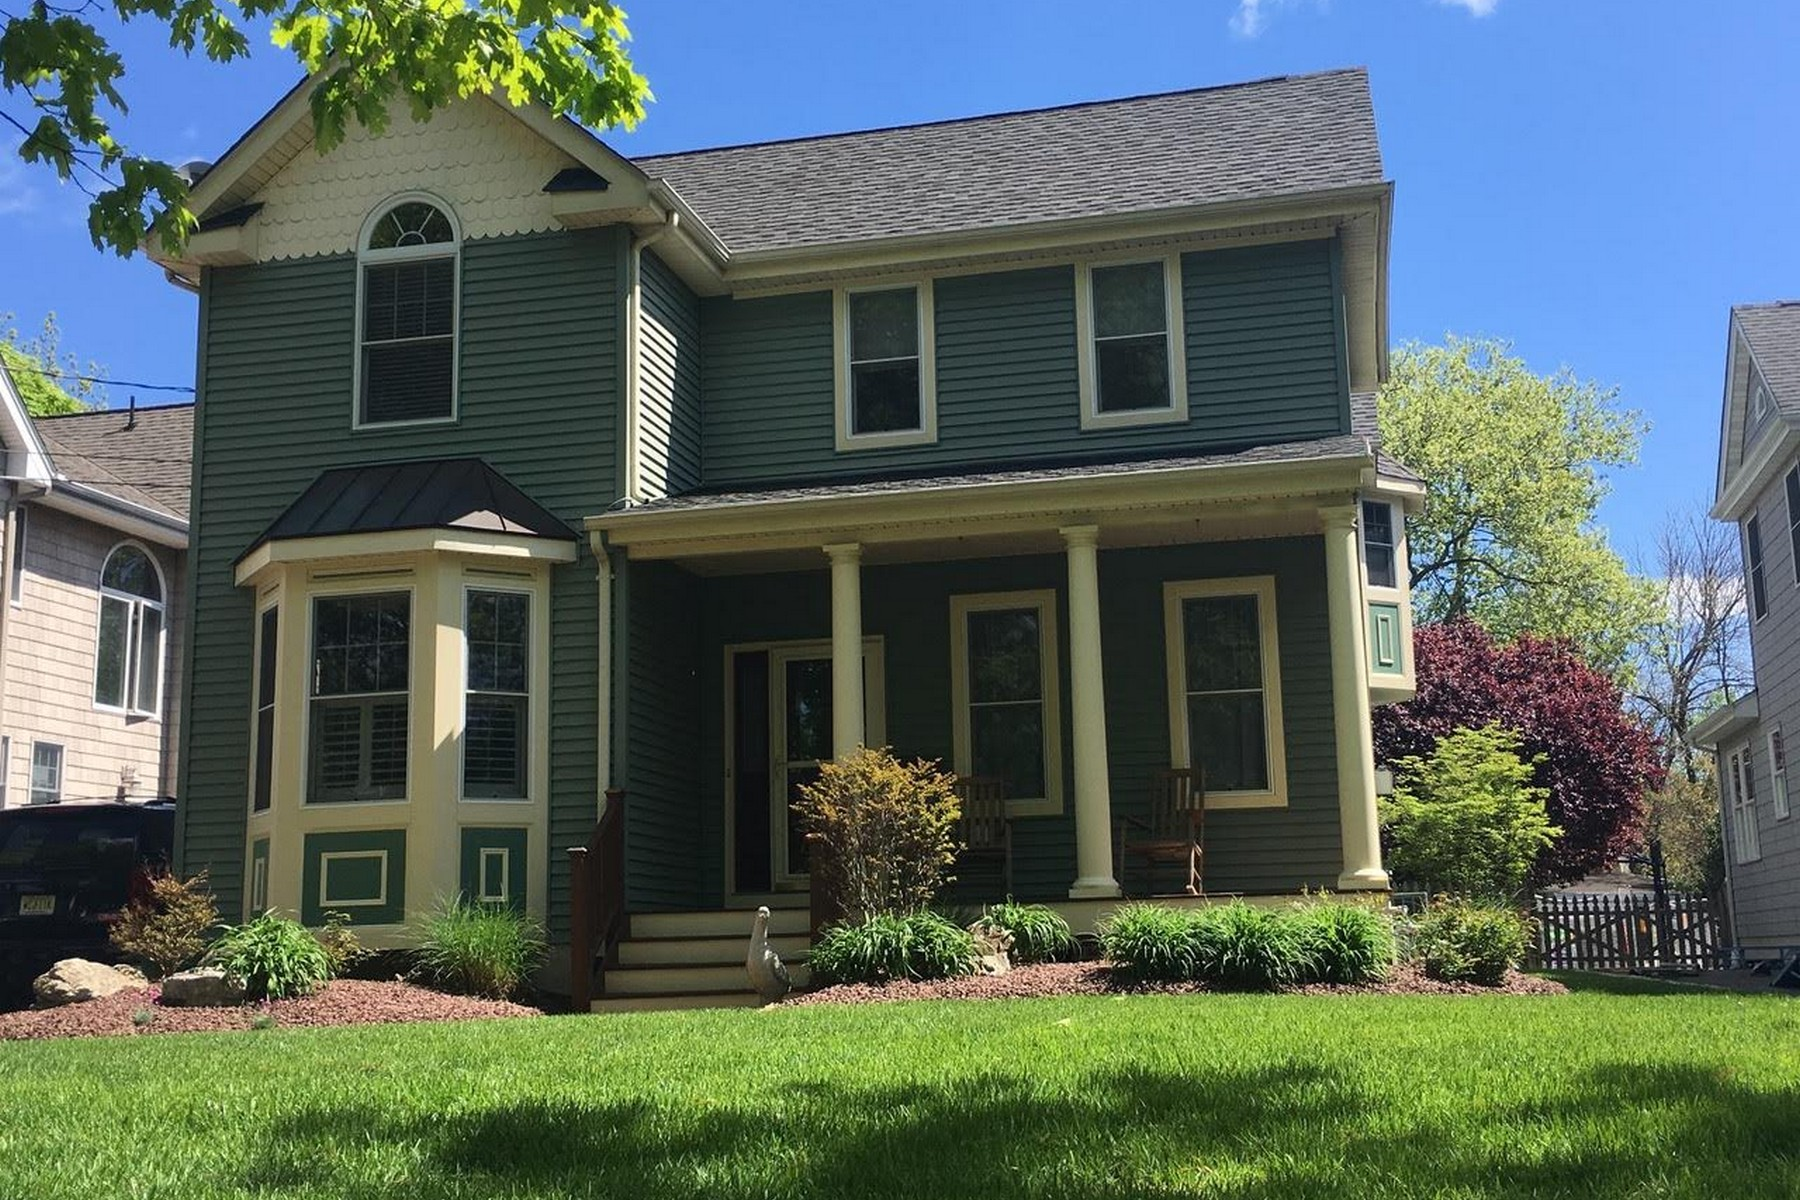 Single Family Home for Sale at Exhilarating Lifestyle 17 Forrest Ave Rumson, New Jersey, 07760 United States